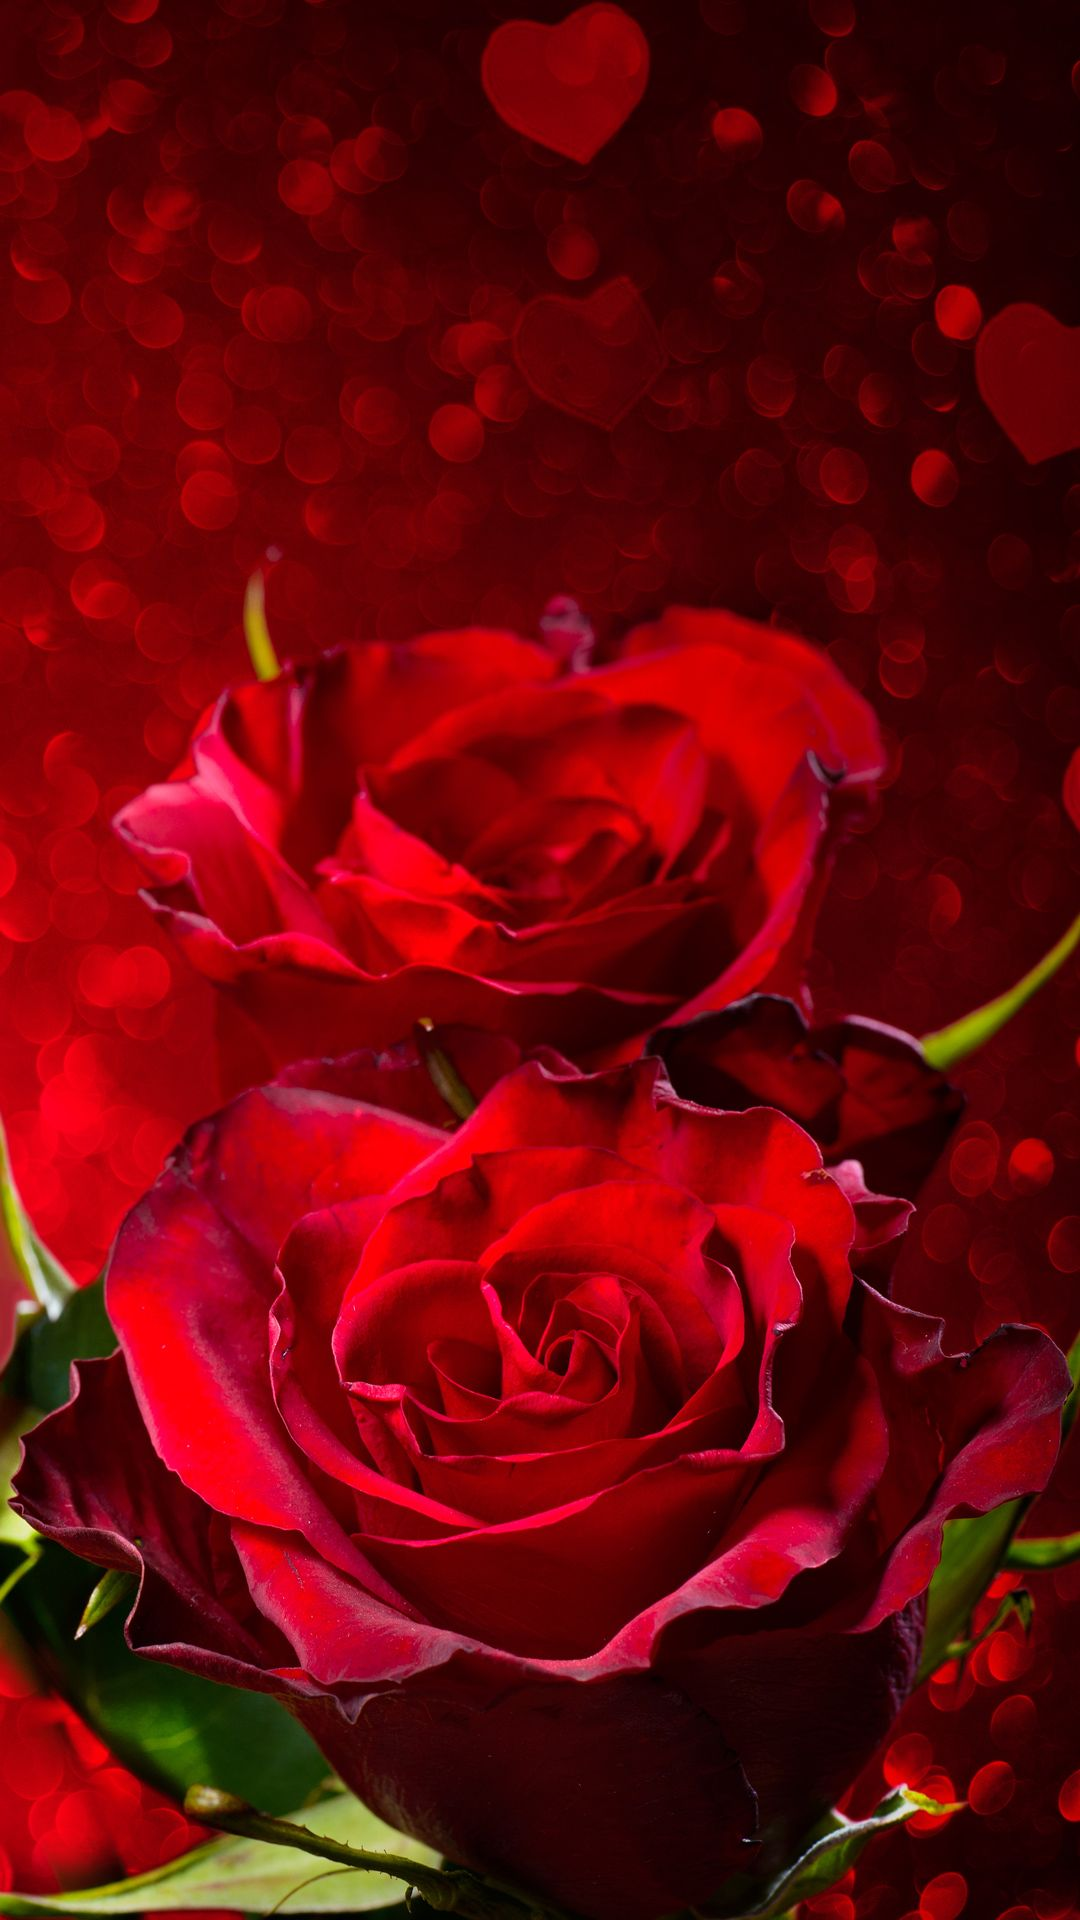 Rose Iphone Wallpapers Top Free Rose Iphone Backgrounds